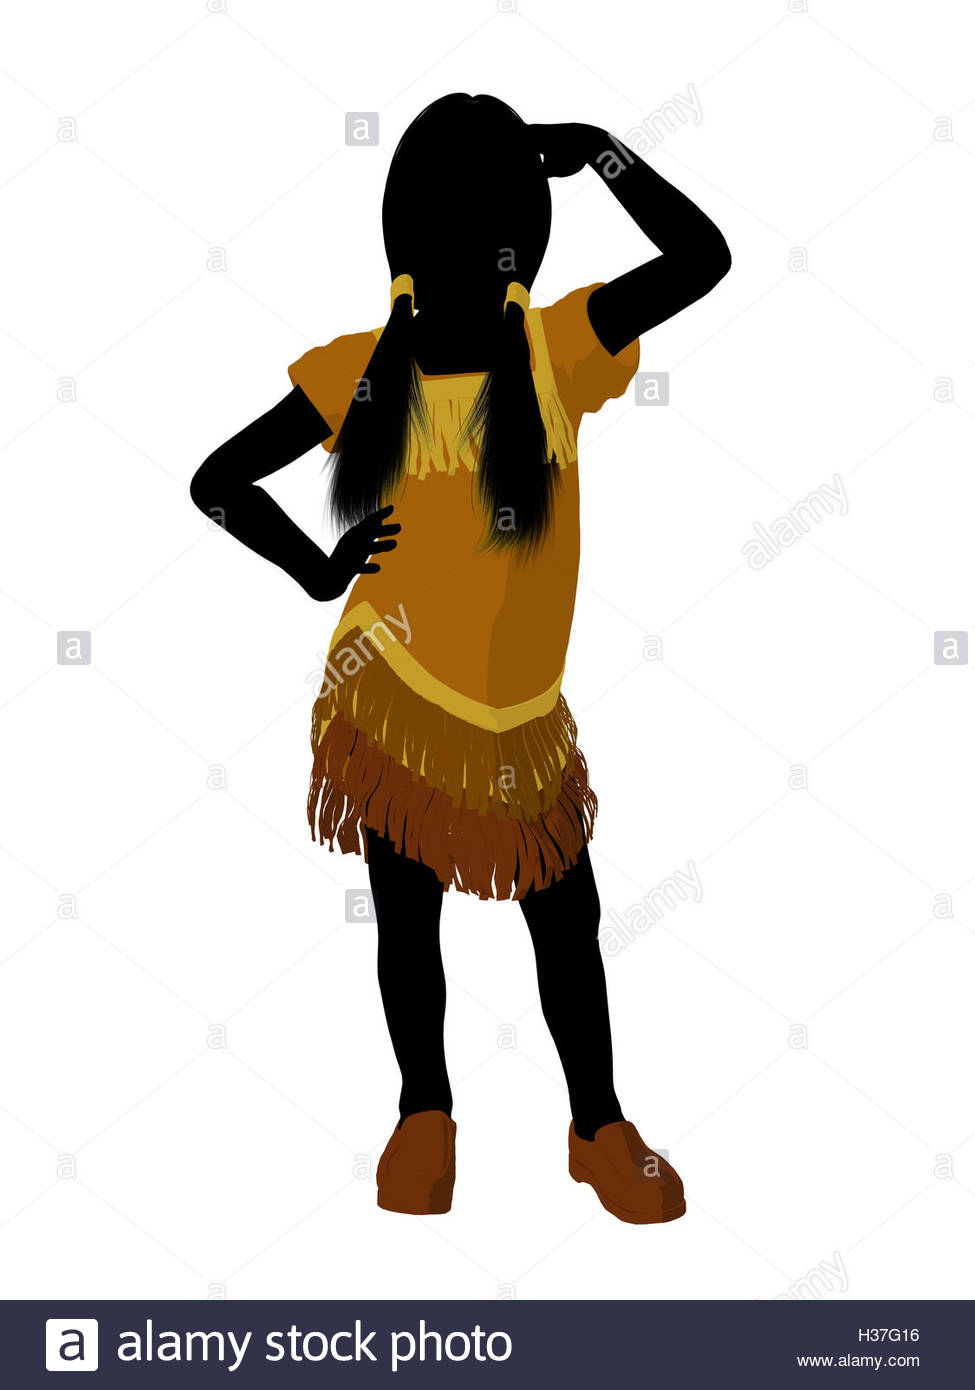 975x1390 Native American Indian Art Illustration Silhouette Stock Photo